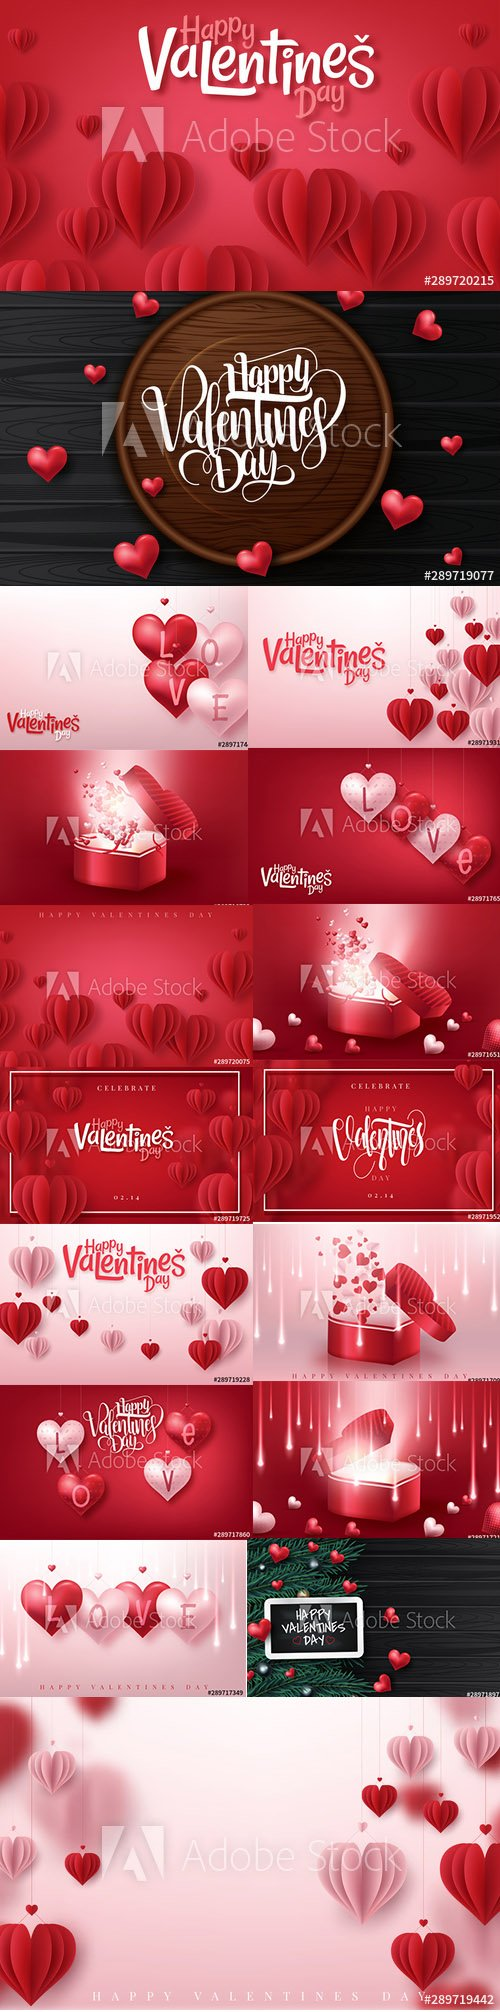 Colorful Happy Valentines Day Illustration with 3D hearts 3